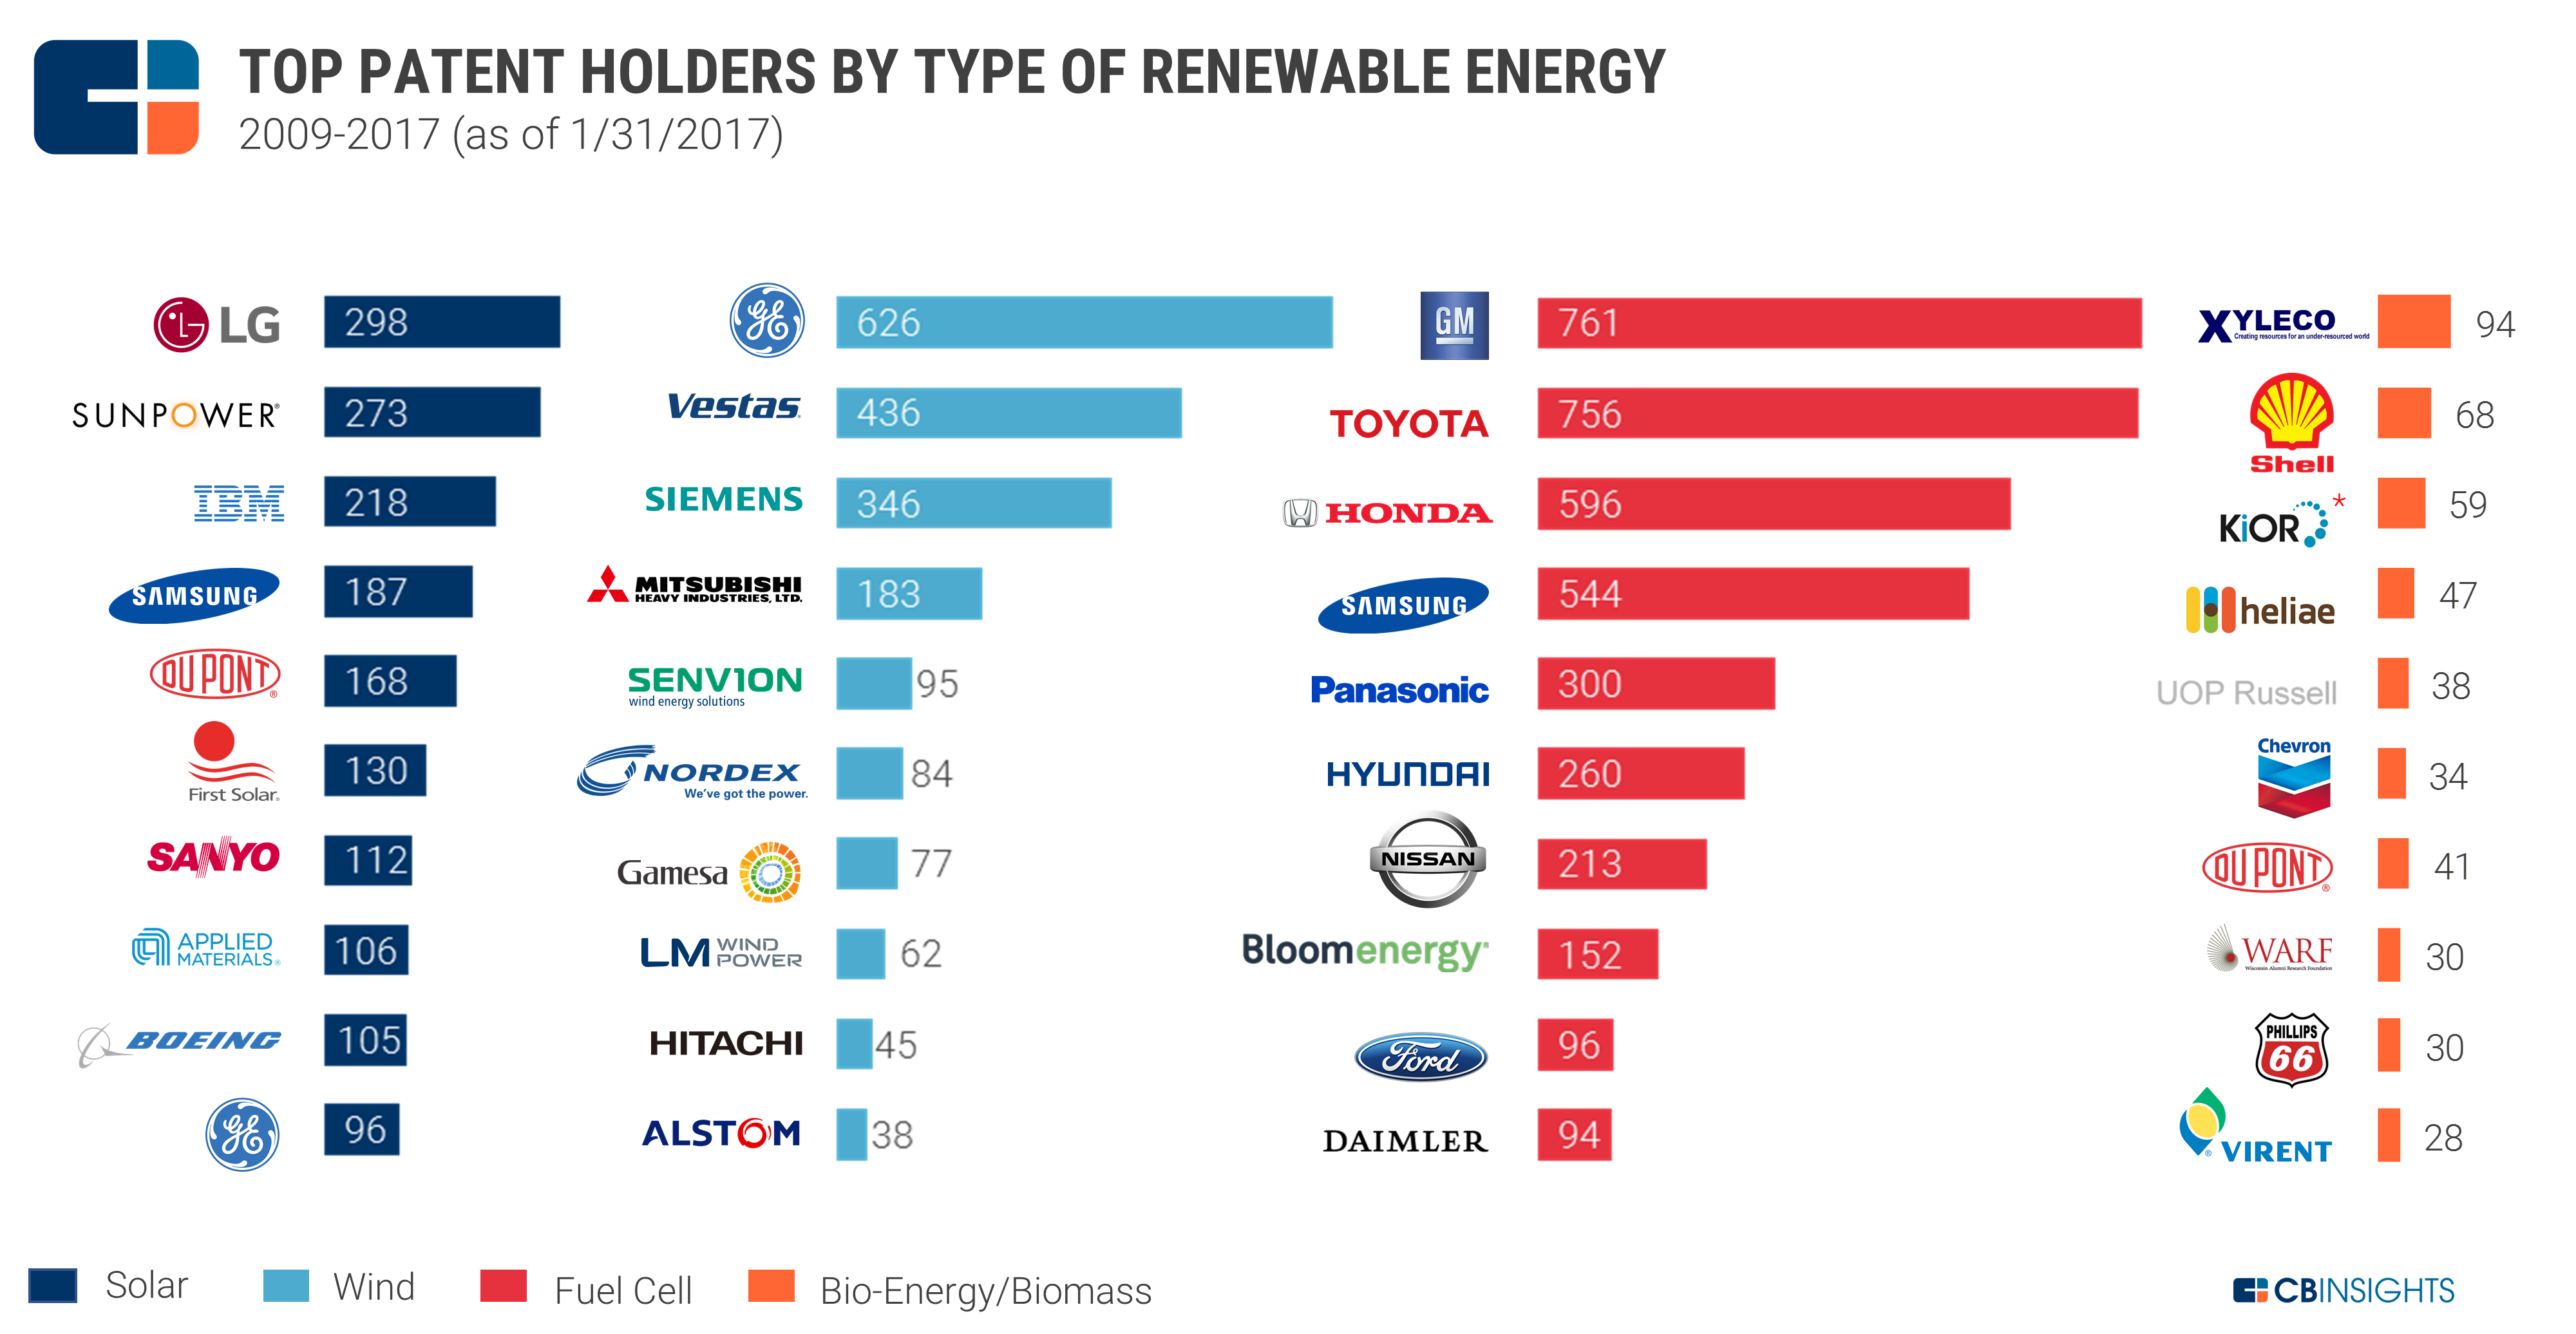 US_renewable_patentsholder_by_category1